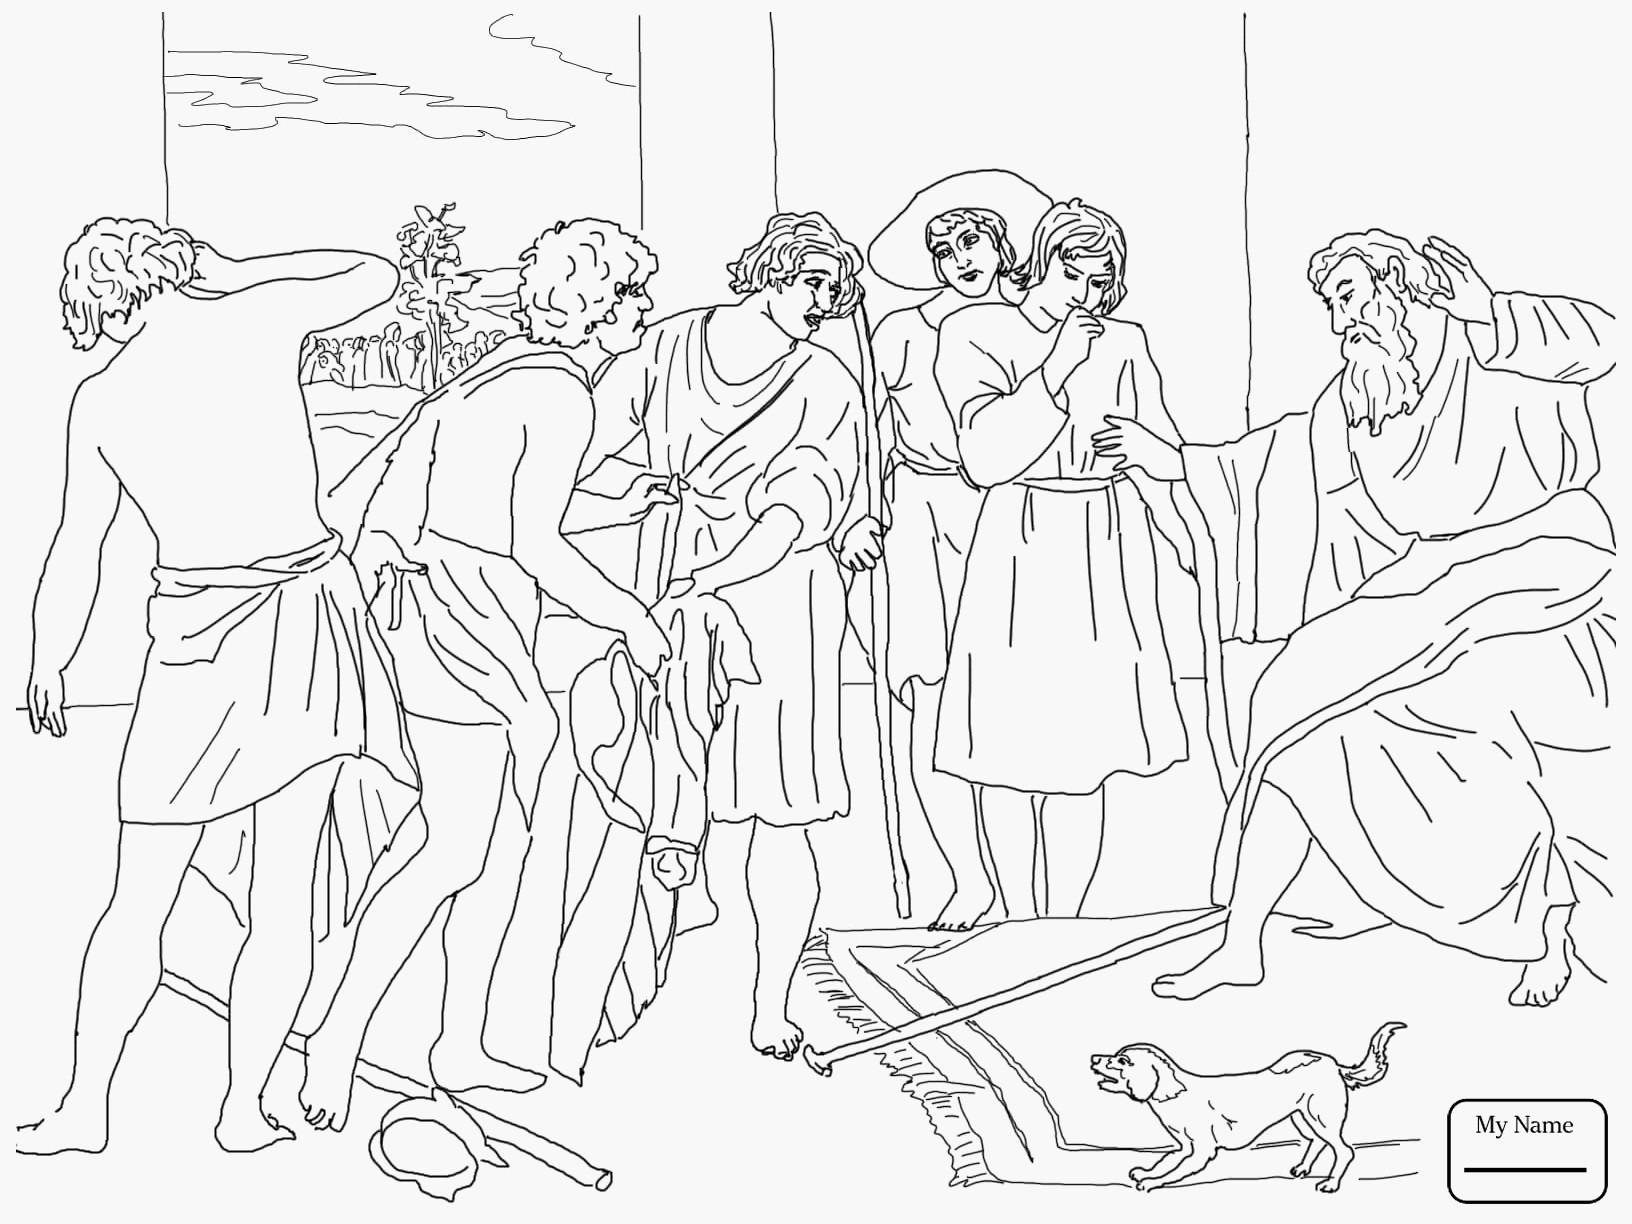 slavery coloring pages - photo#24